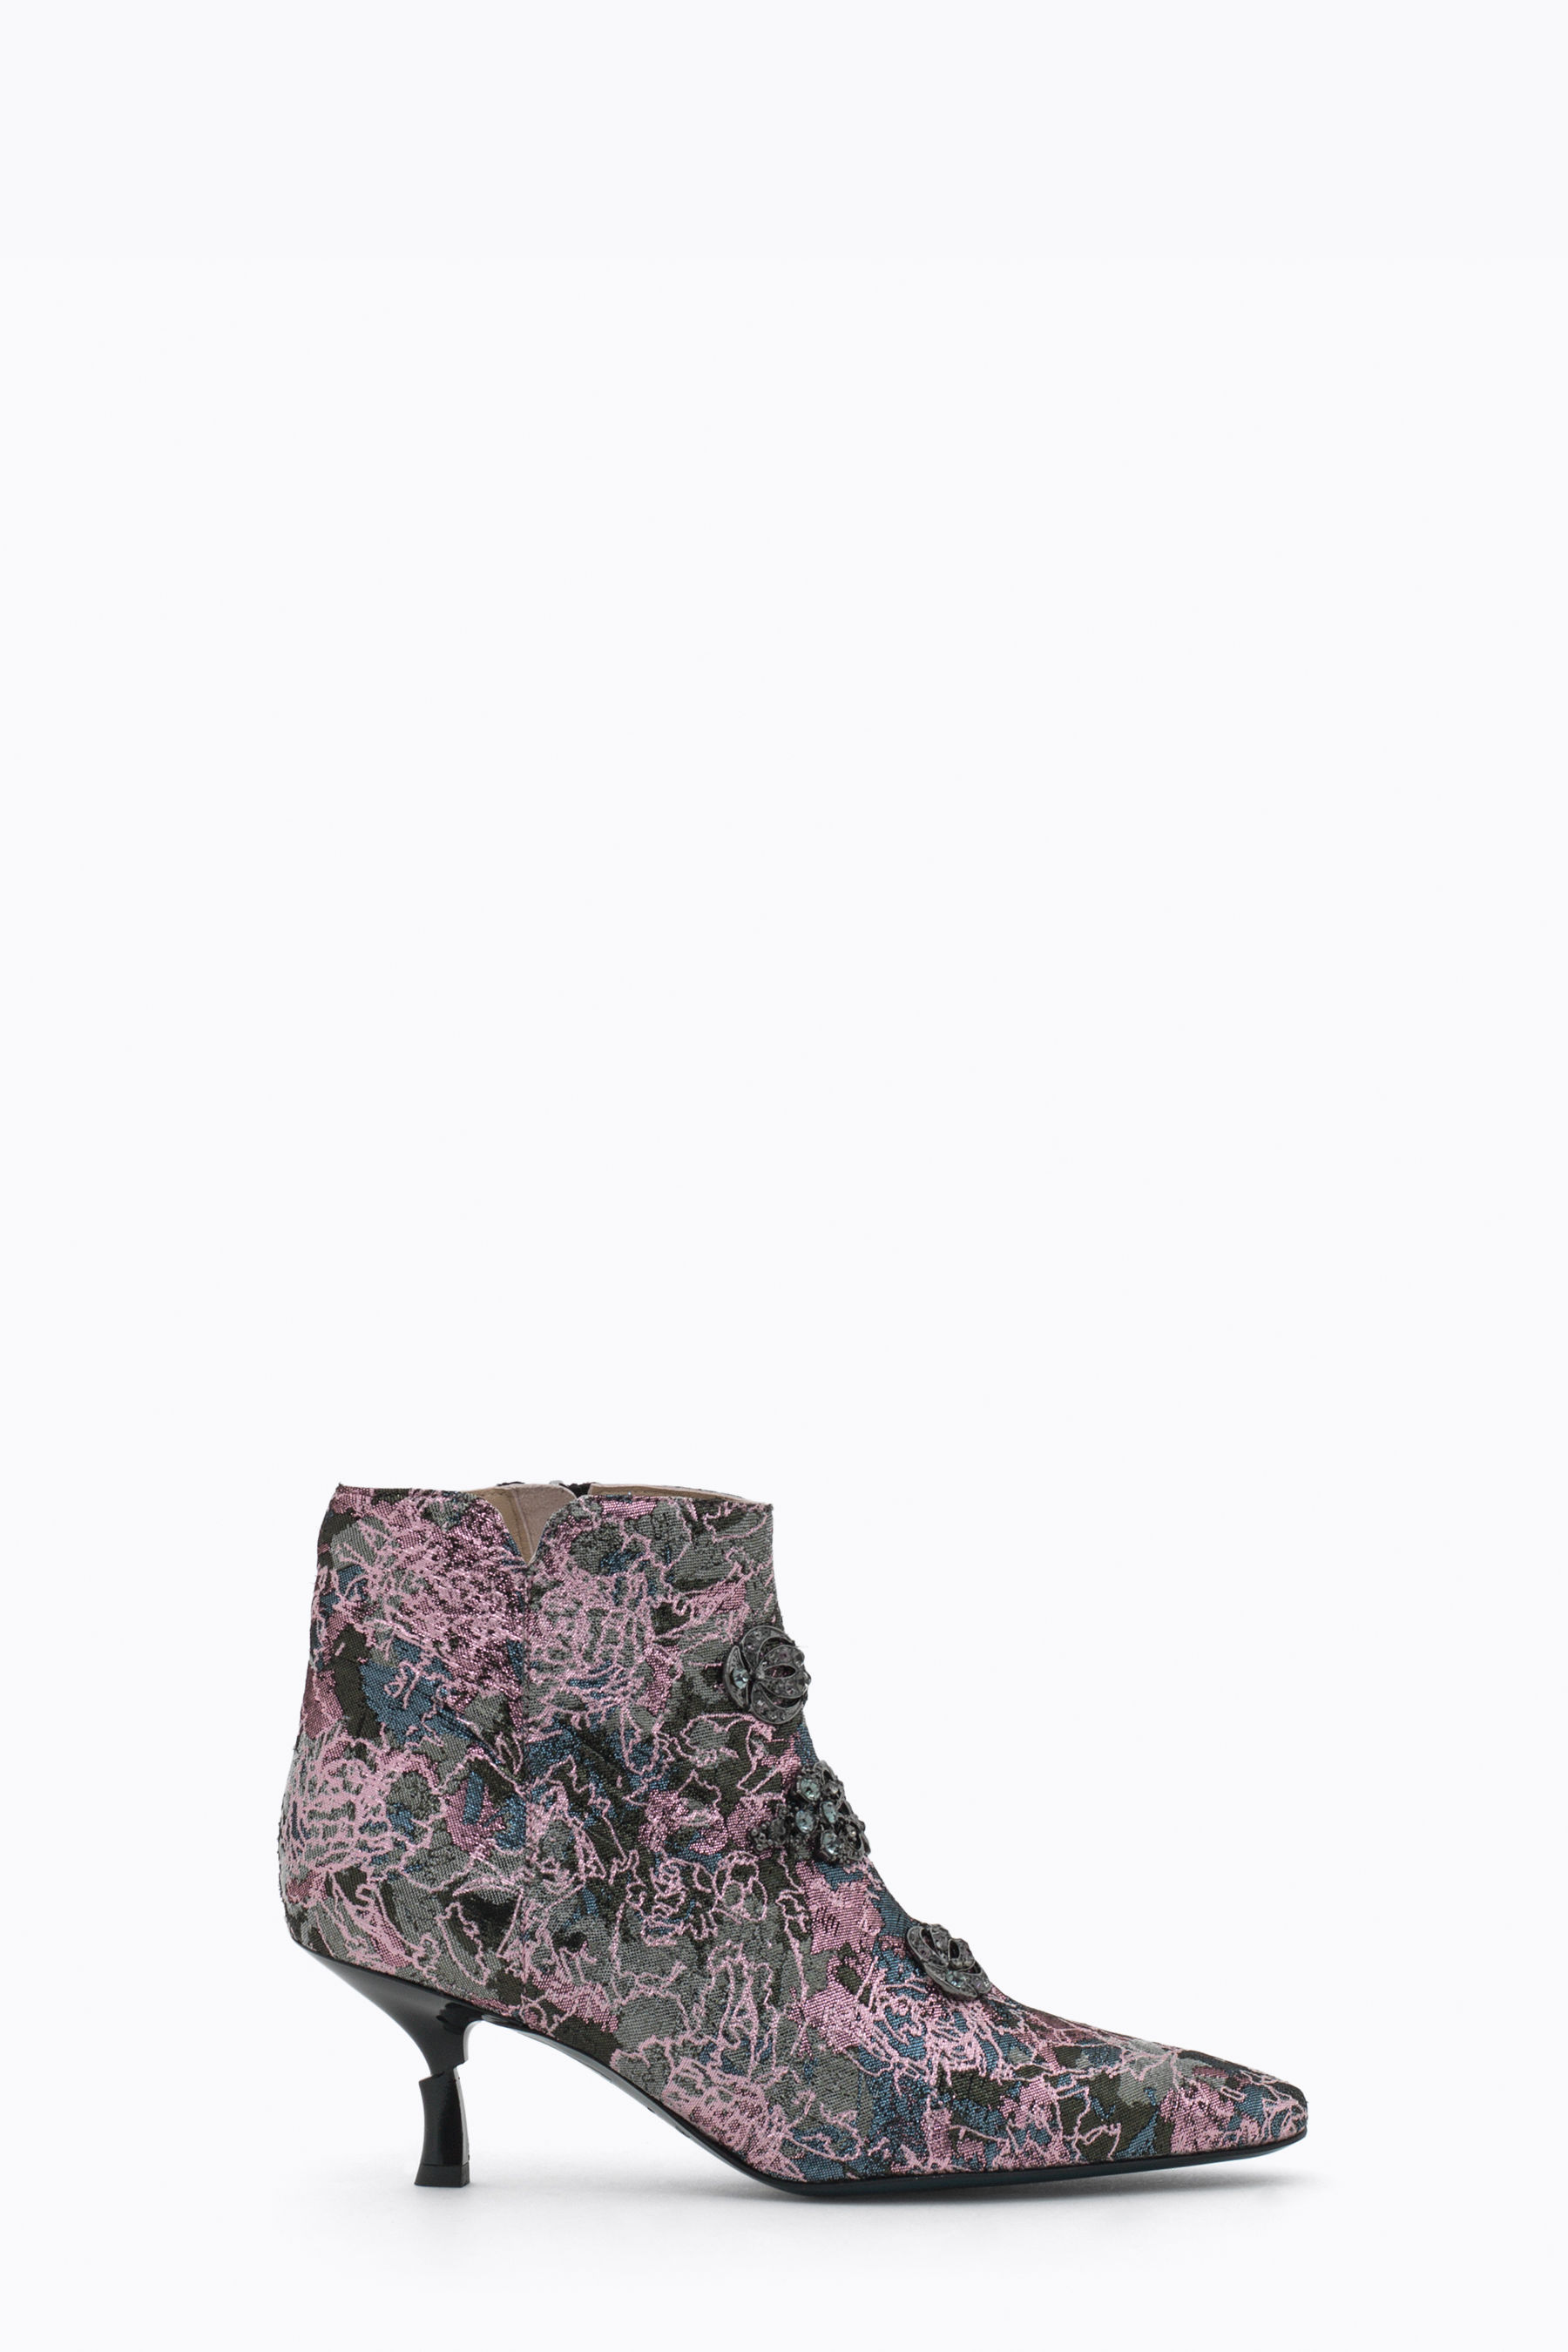 Ankle boot in jacquard fabric